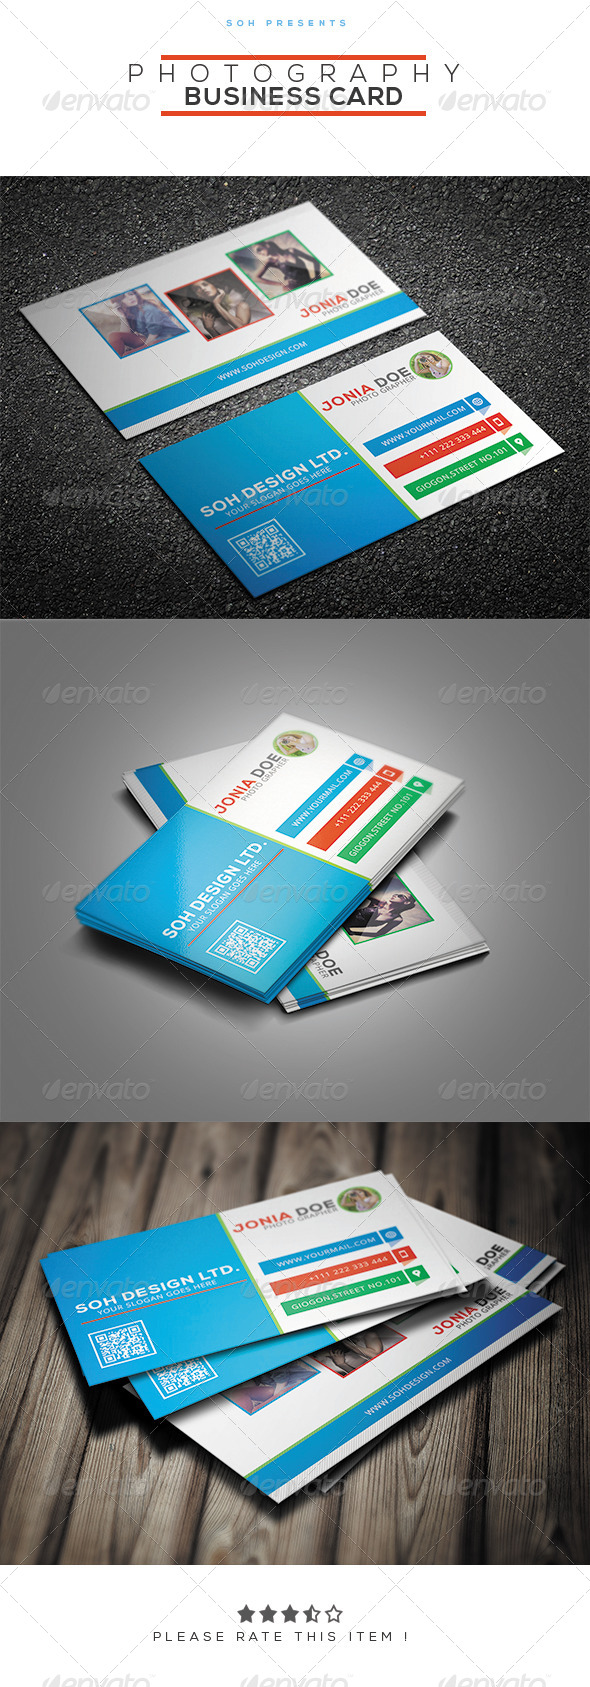 GraphicRiver Photography Business Card Template 8496550